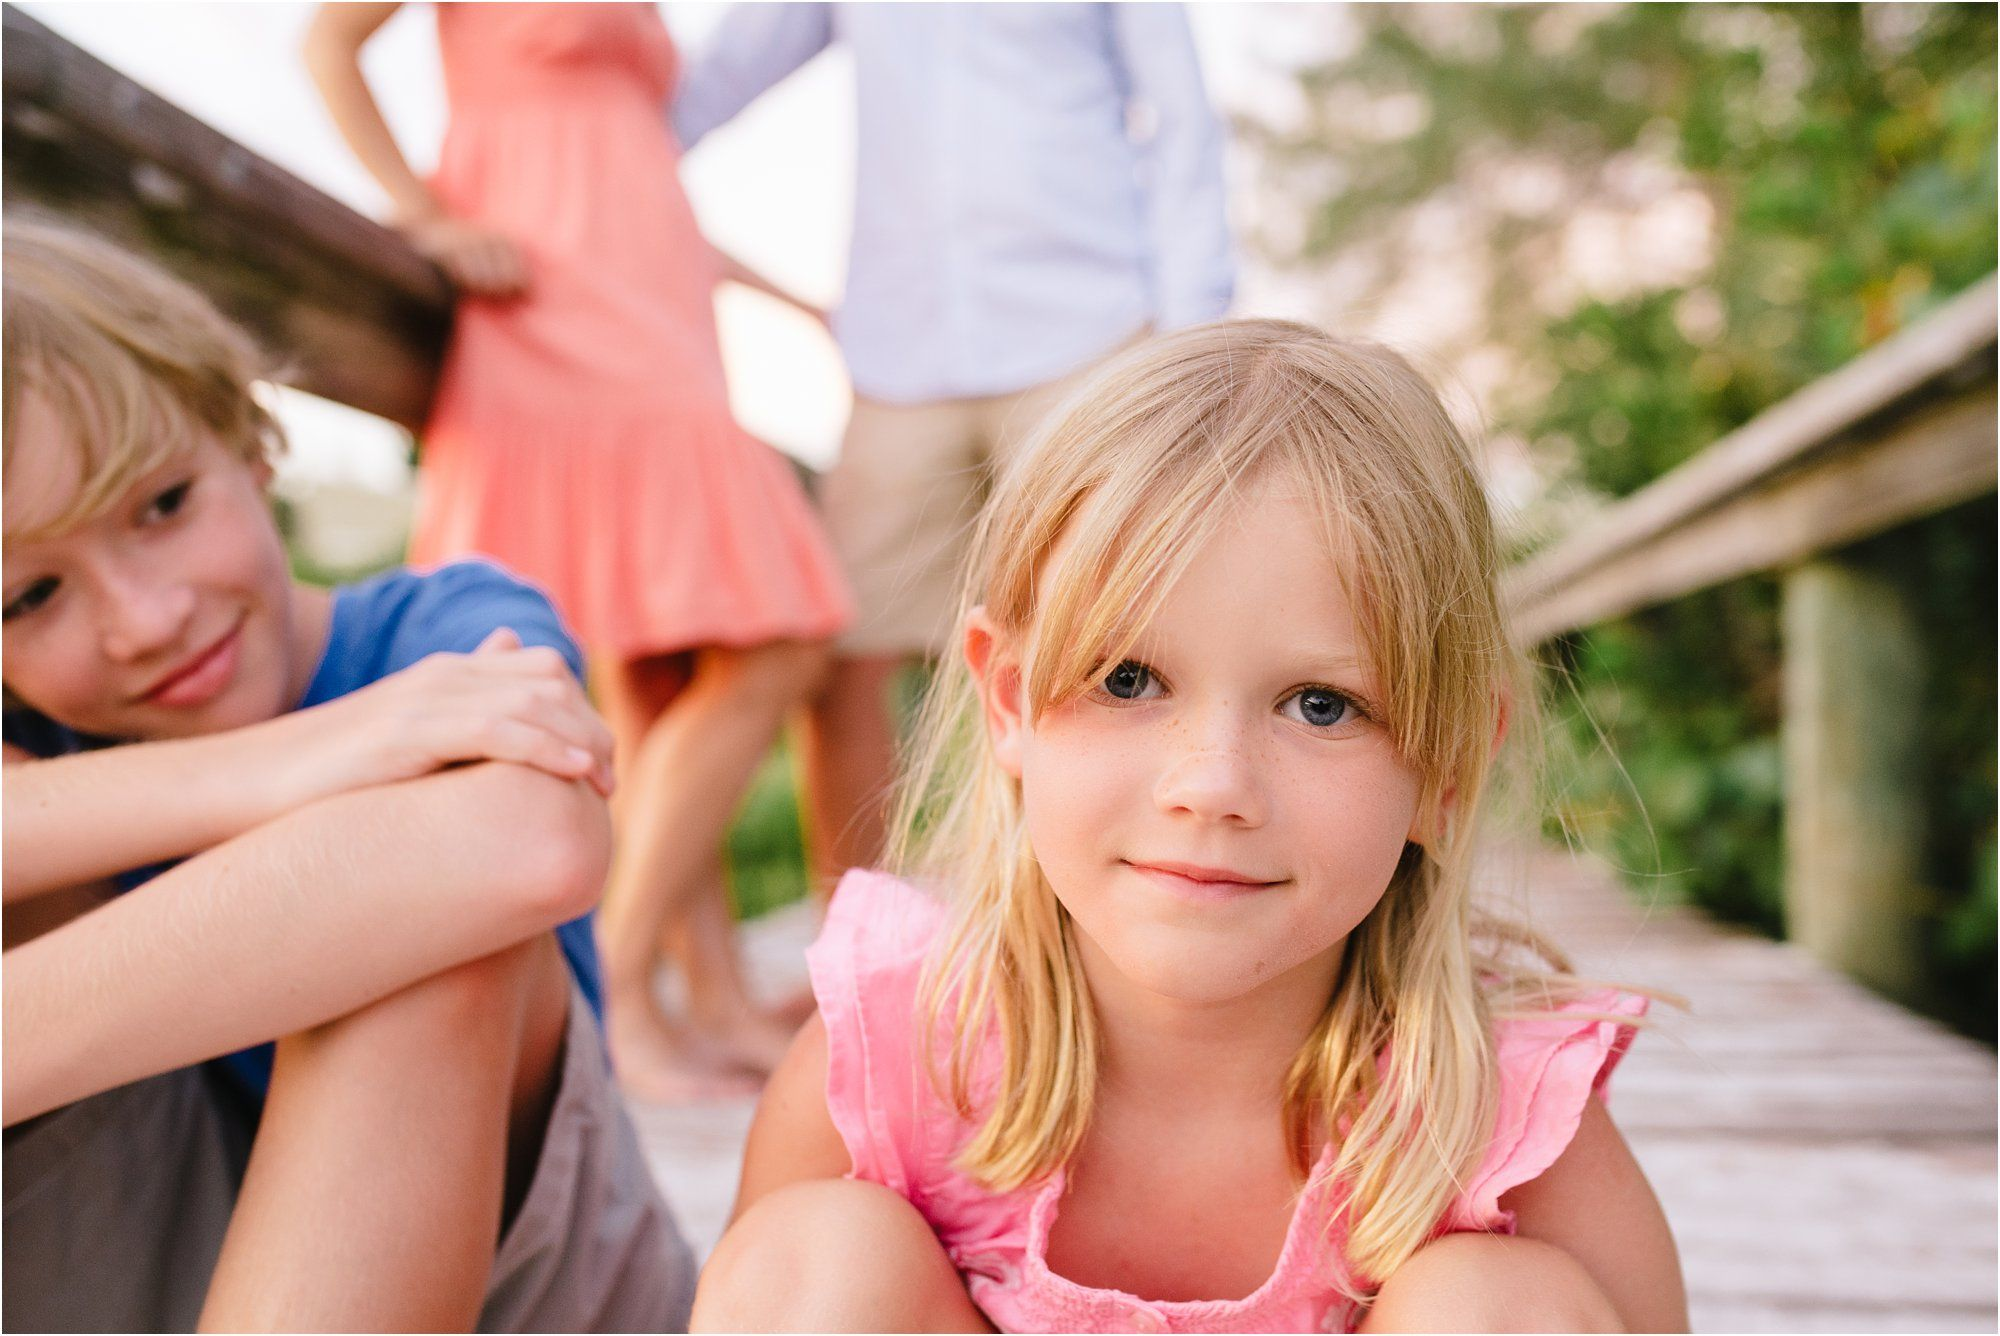 The Engerts   Sarasota Florida Family Photographer   In Home Family Photojournalism Storytelling Documentary Photographer   On location and beach vacation photography